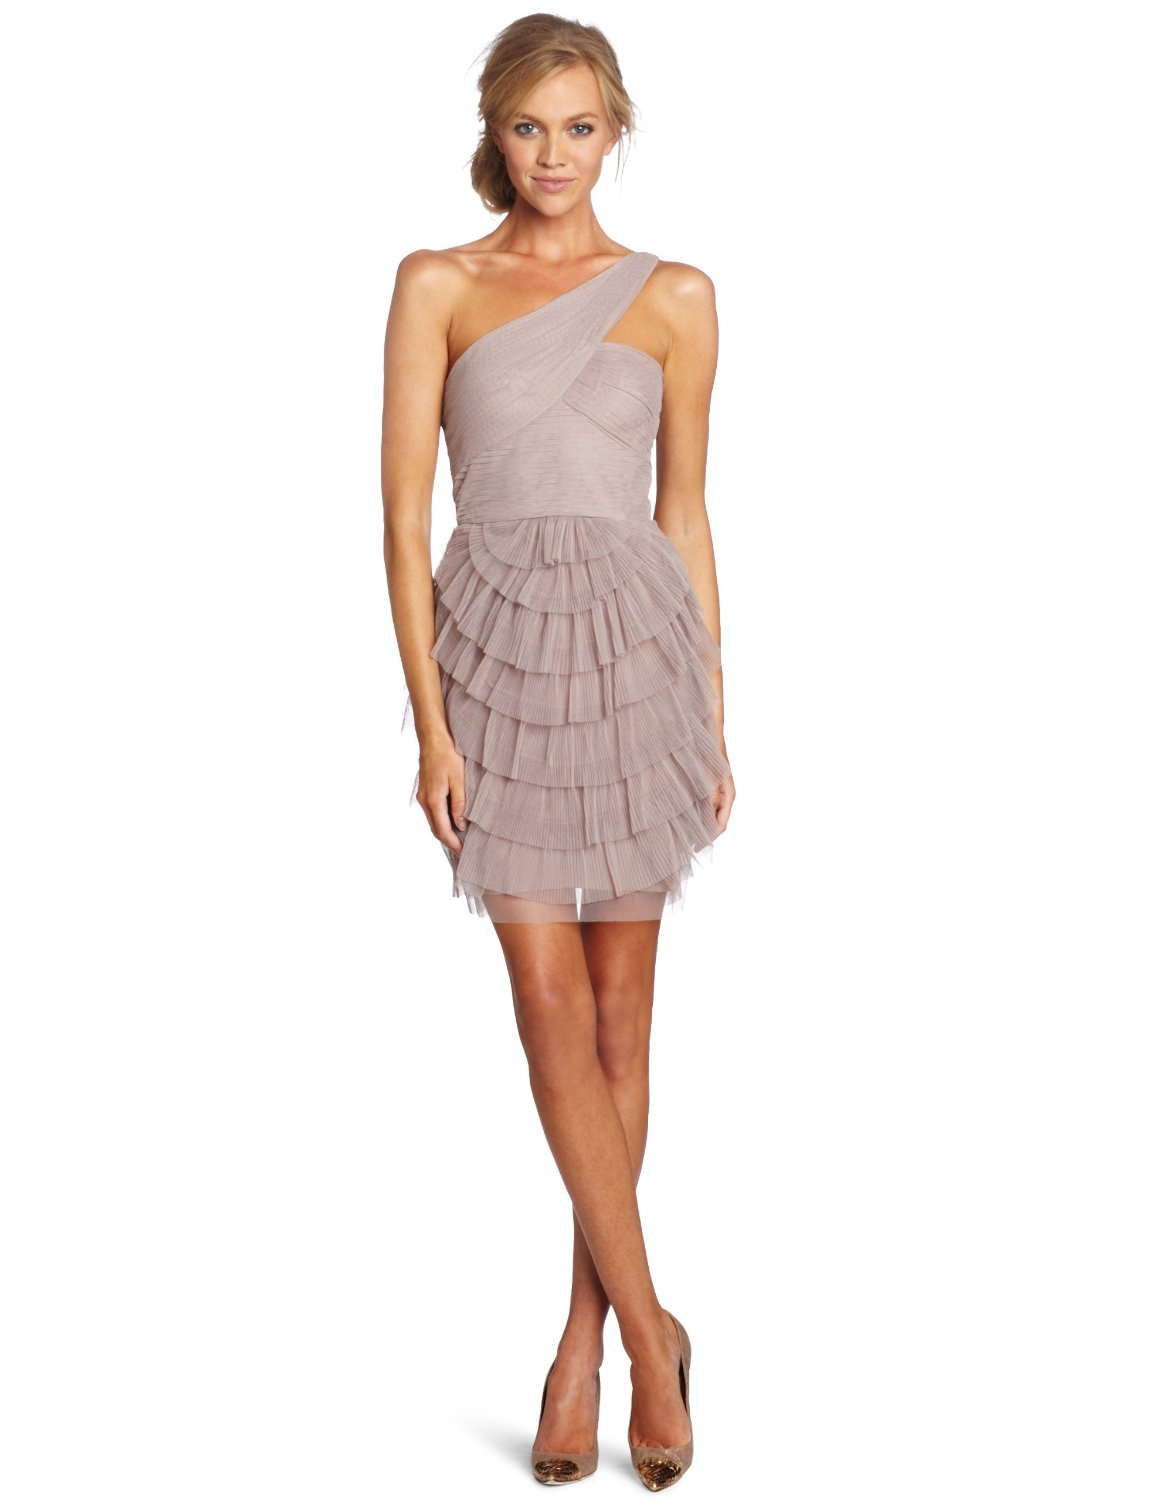 04340c99c0 BCBGMAXAZRIA Women s Petite Ella Pleated One Shoulder Cocktail Dress   Amazon.com  Clothing